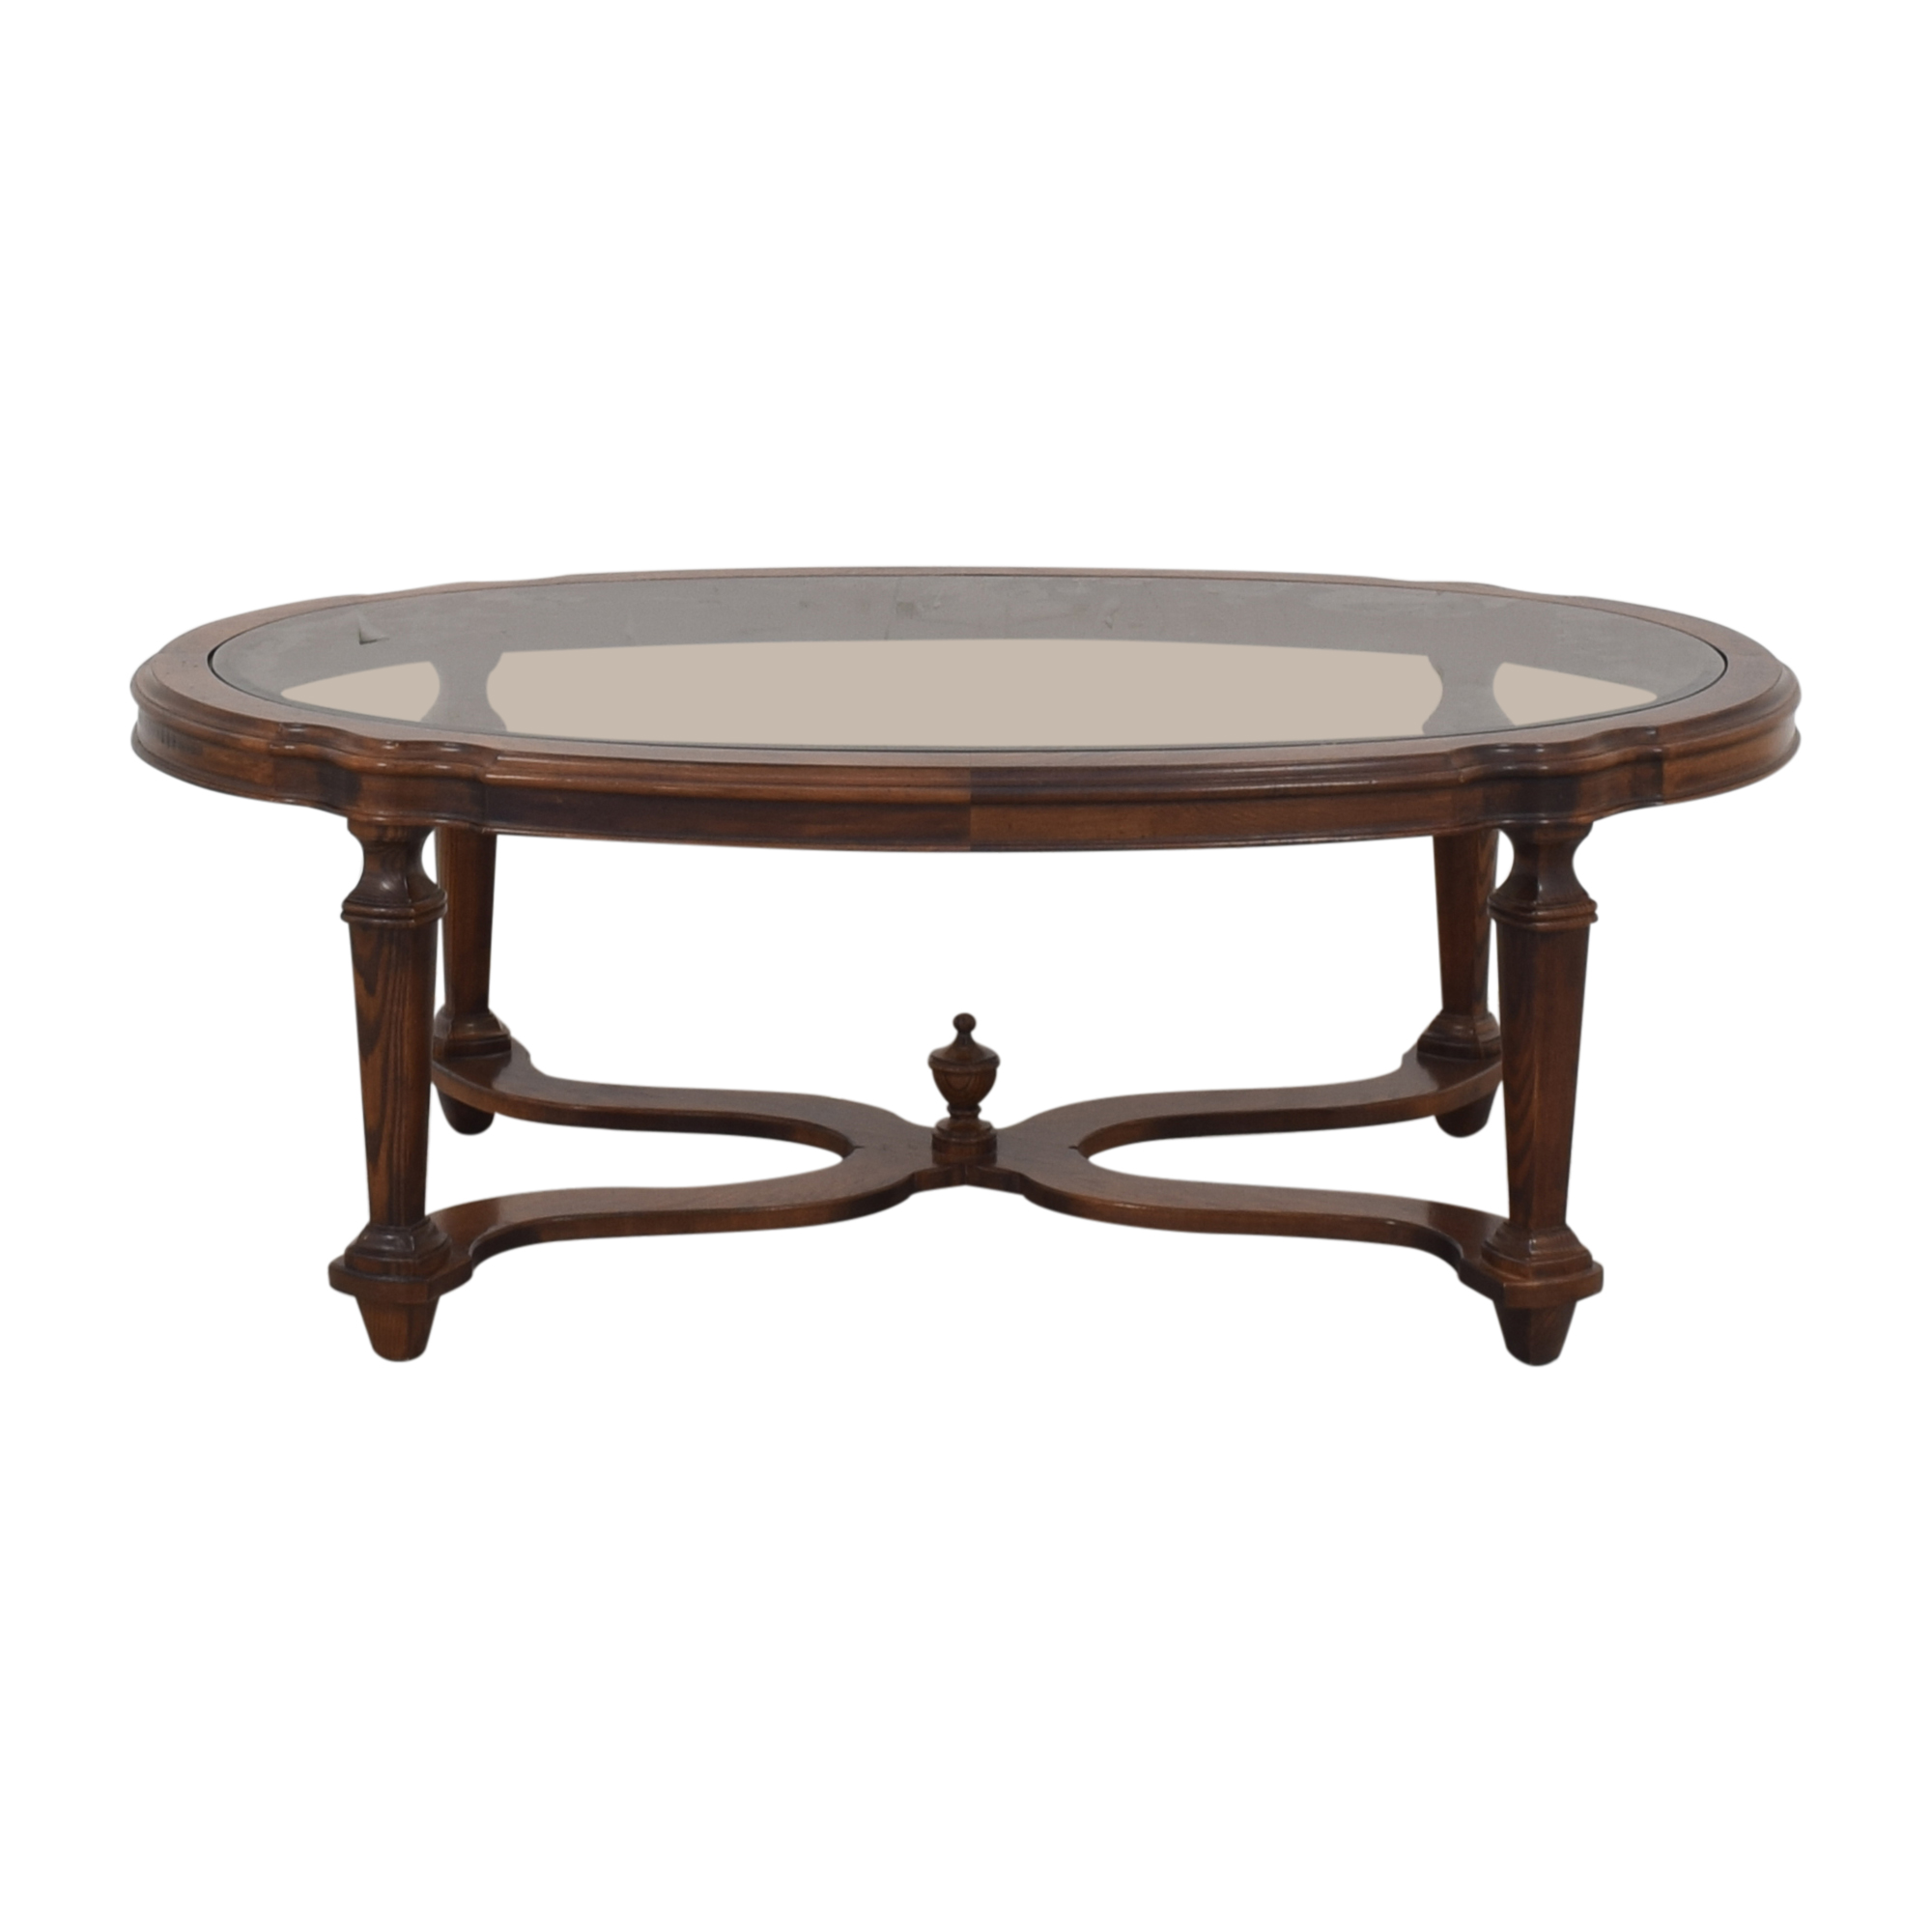 Ethan Allen Ethan Allen Vintage Coffee Table price